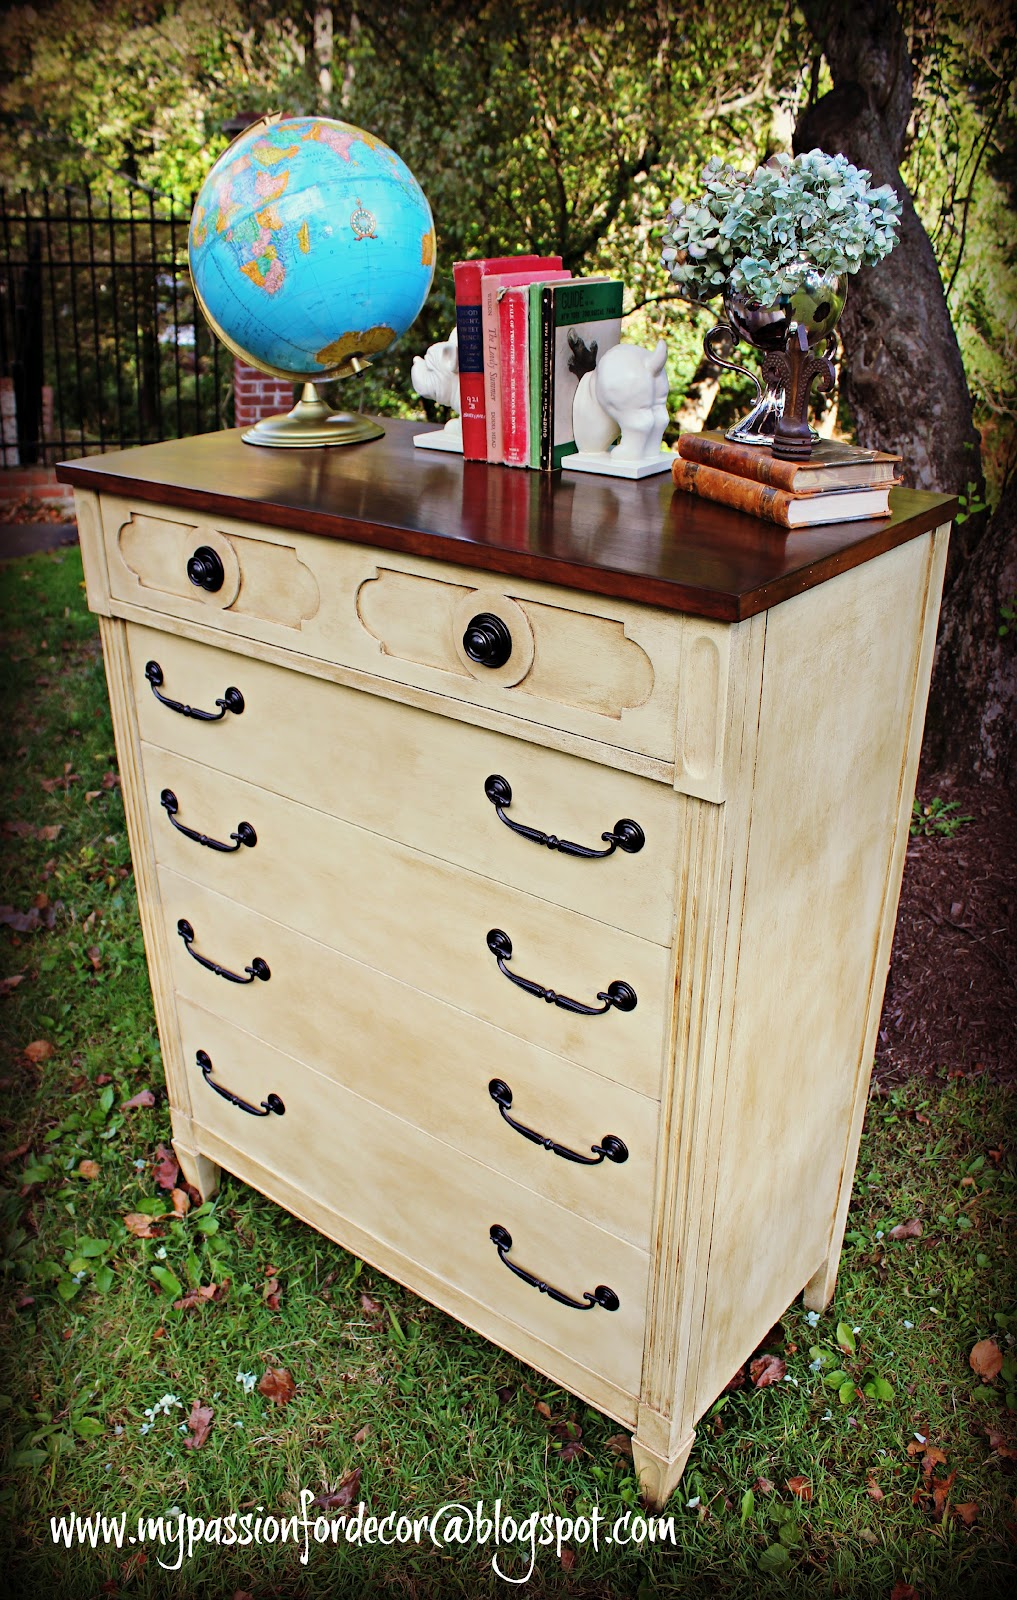 My Passion For Decor: 1960's Dresser Brought Back To Life